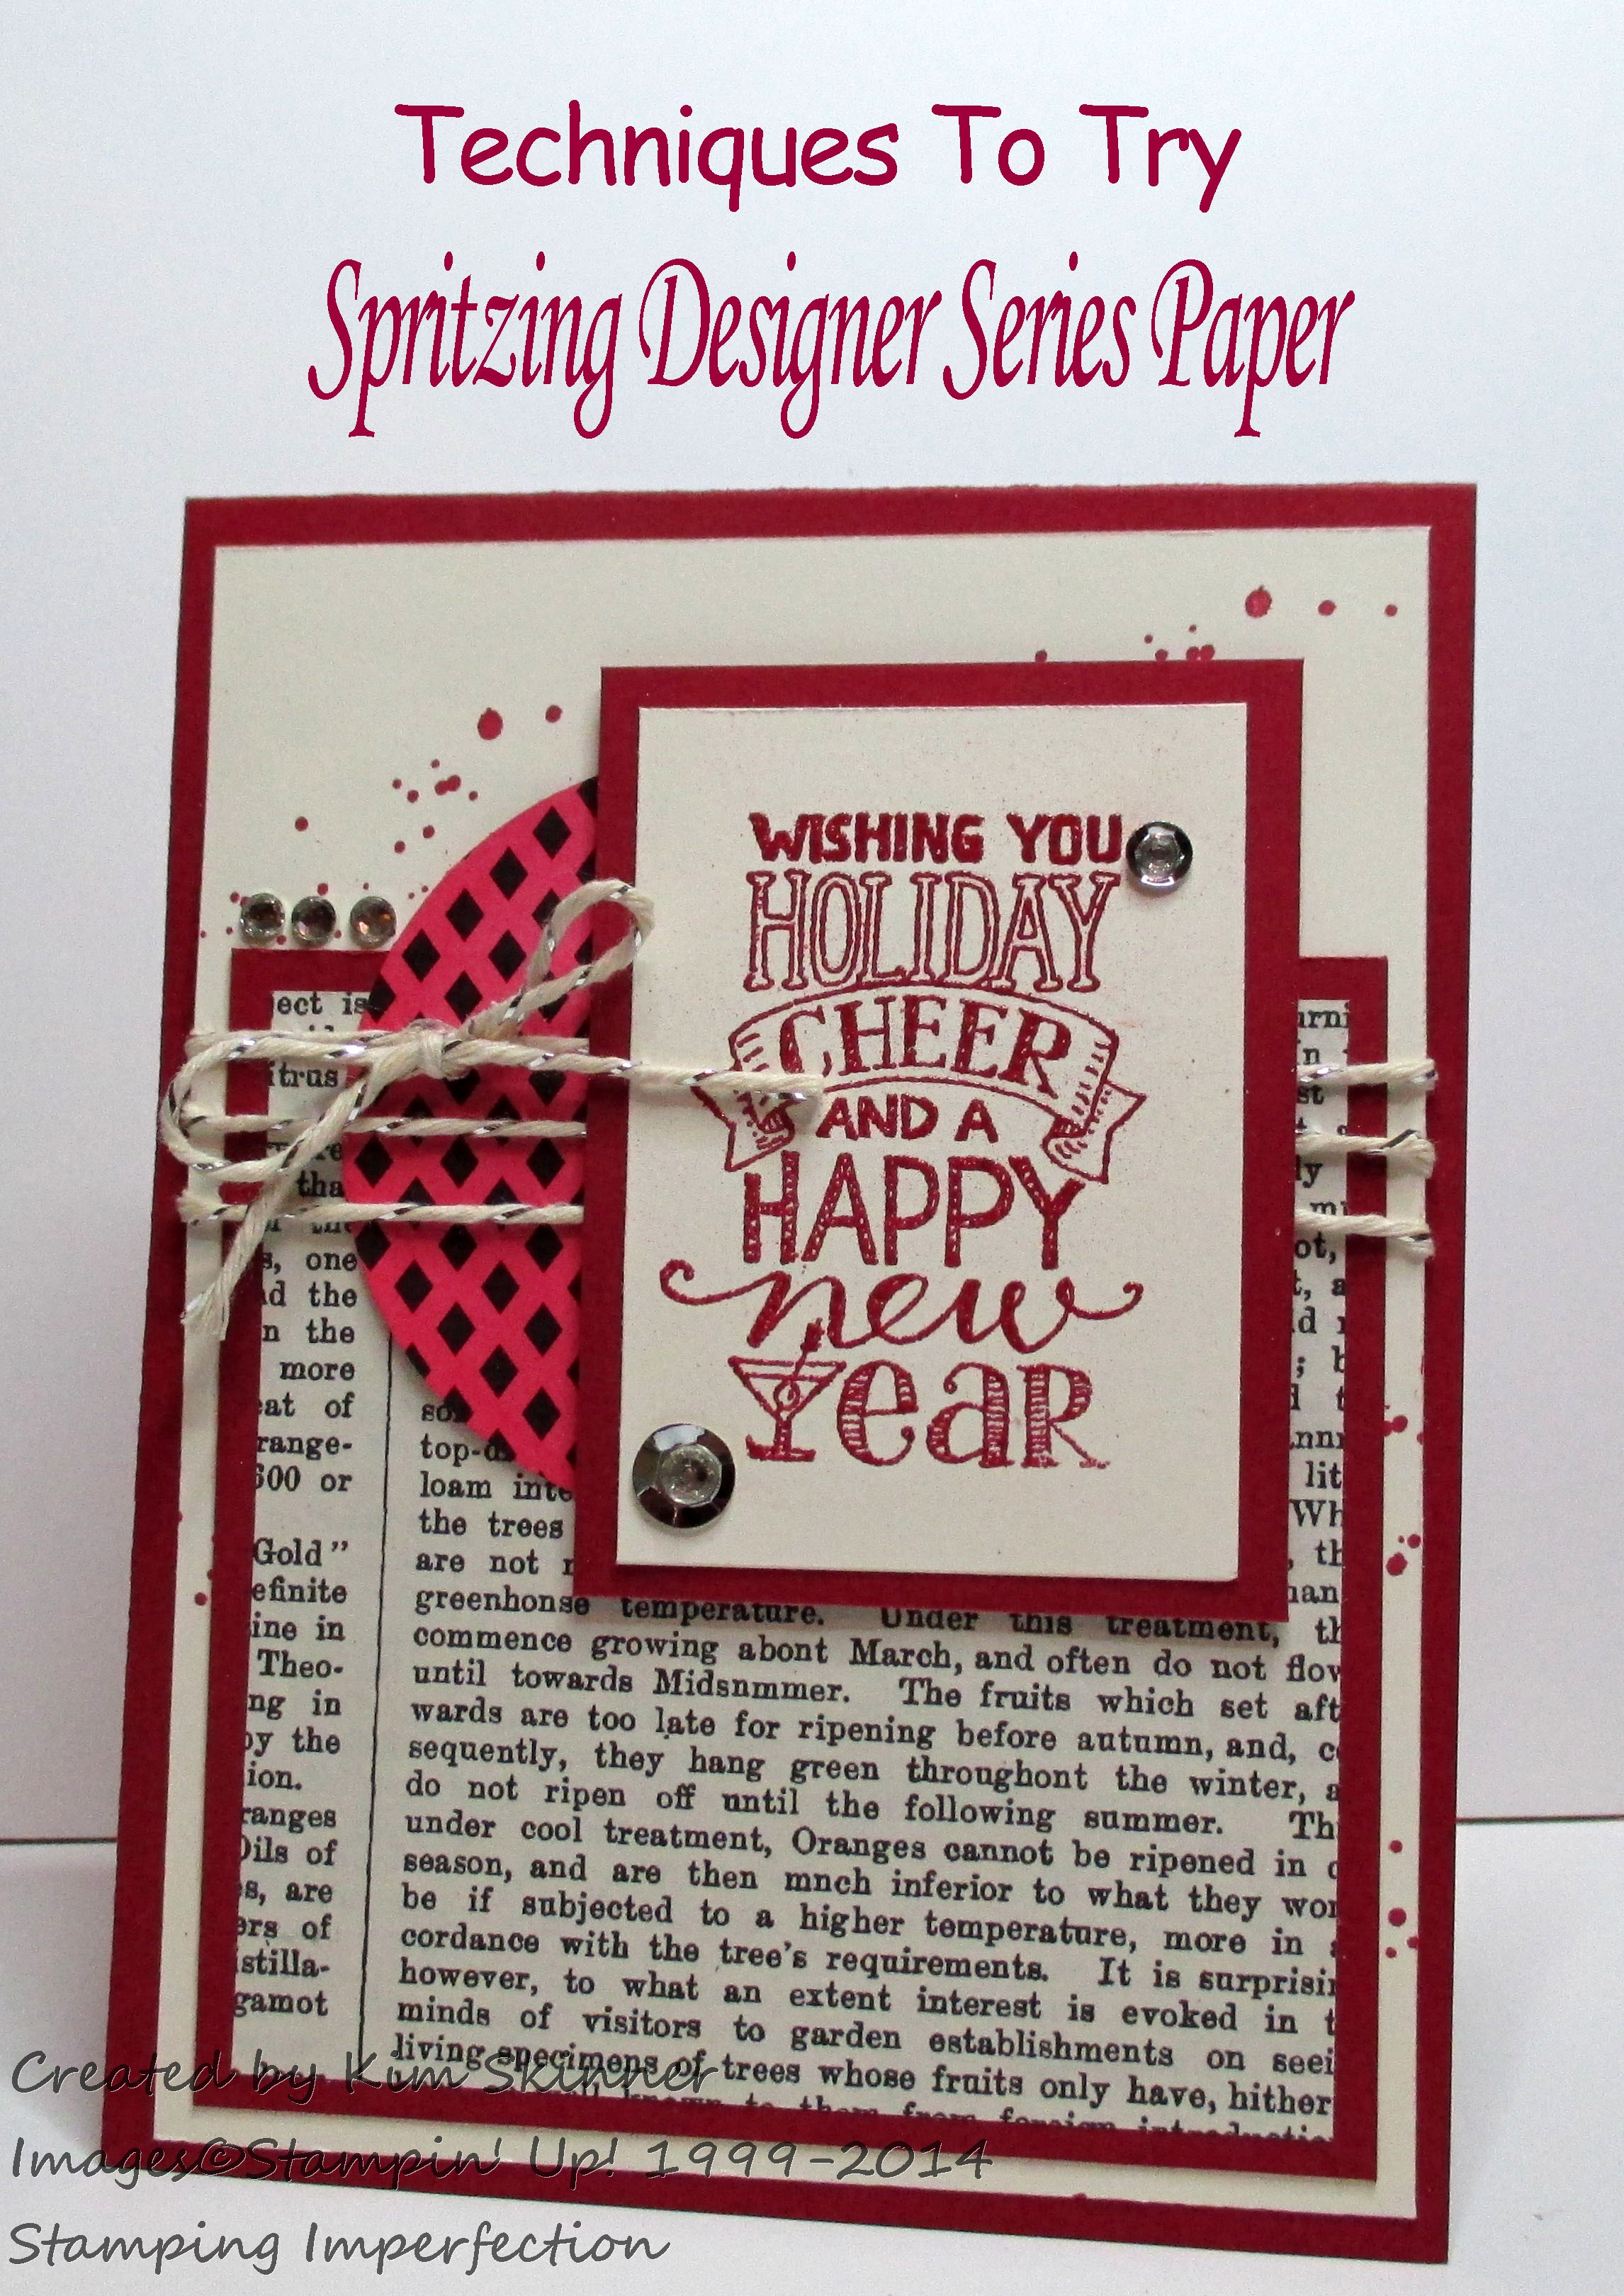 Stamping Imperfection spritzing designer series paper